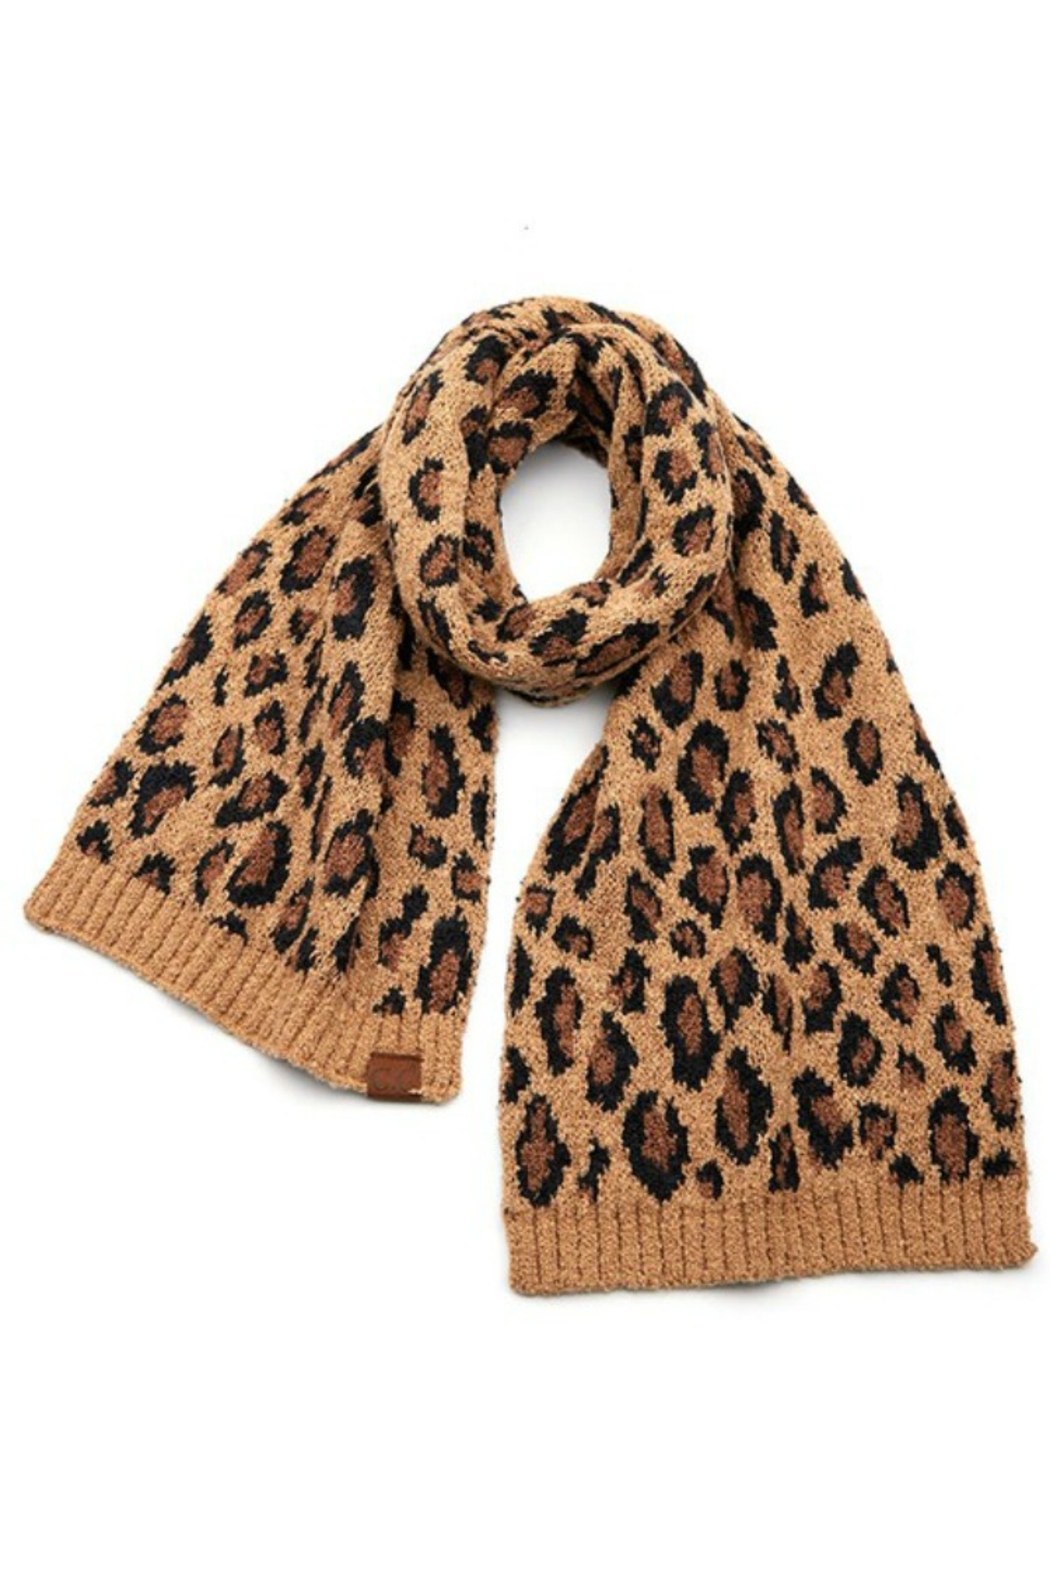 Susan Ankerson Leopard Boucle Scarf - Front Full Image